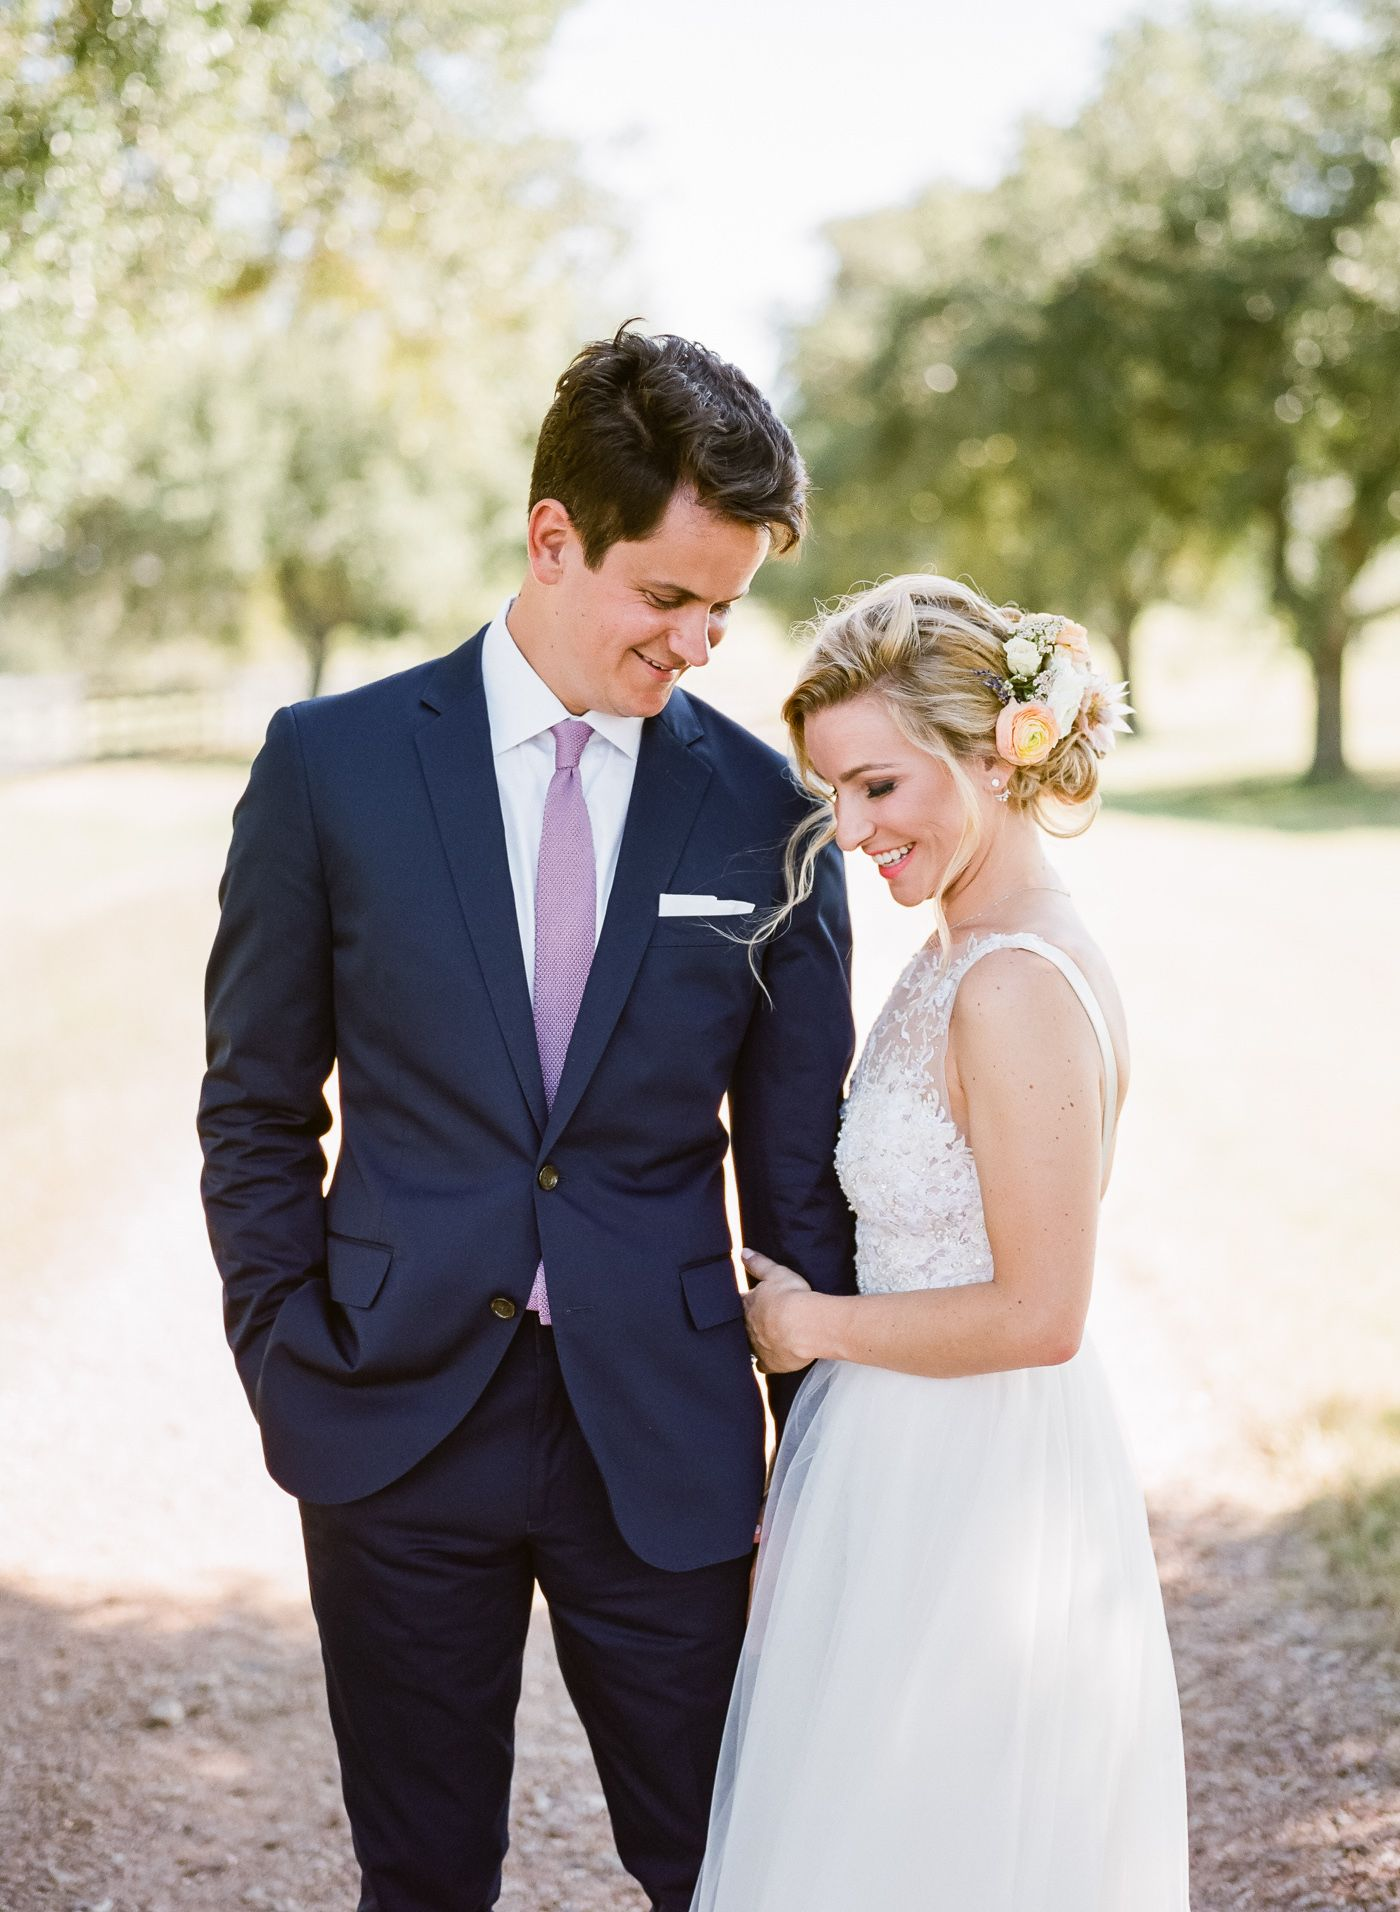 Wedding dresses with purple accents  Boho Lux Wedding Featured on MarthaWeddings  Photography by